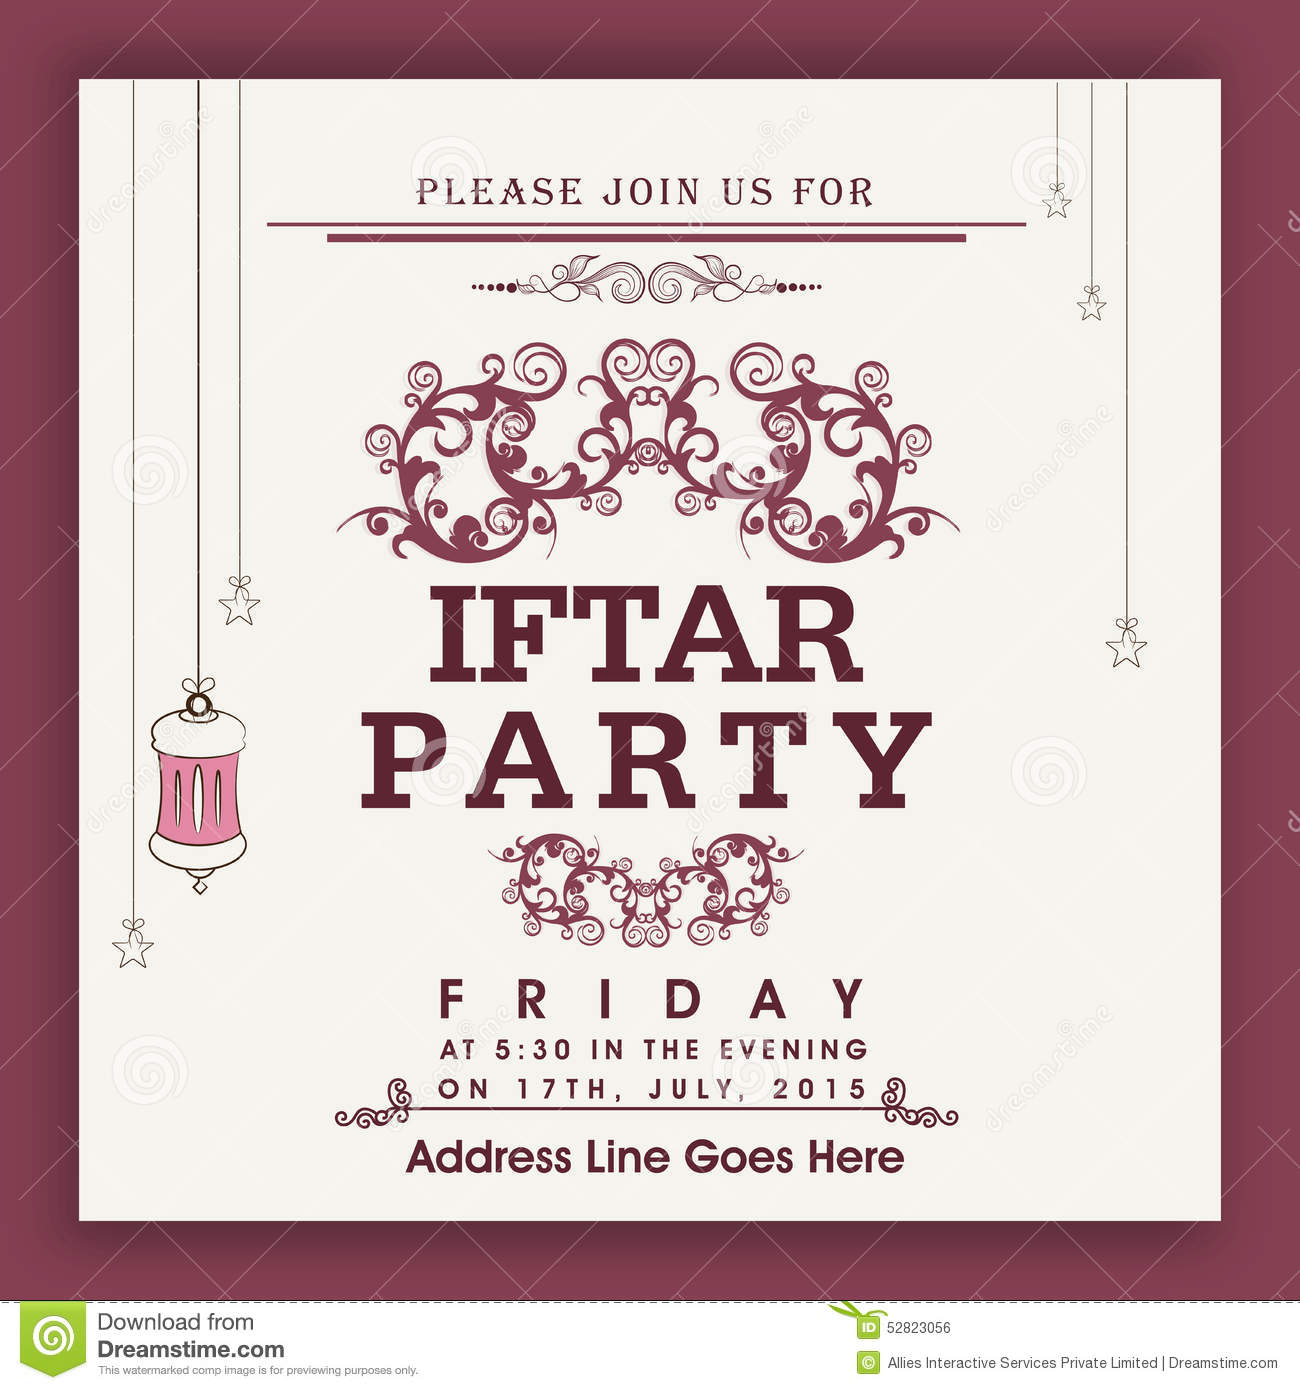 Beautiful invitation card for ramadan kareem iftar party celebration download beautiful invitation card for ramadan kareem iftar party celebration stock illustration illustration of stopboris Gallery